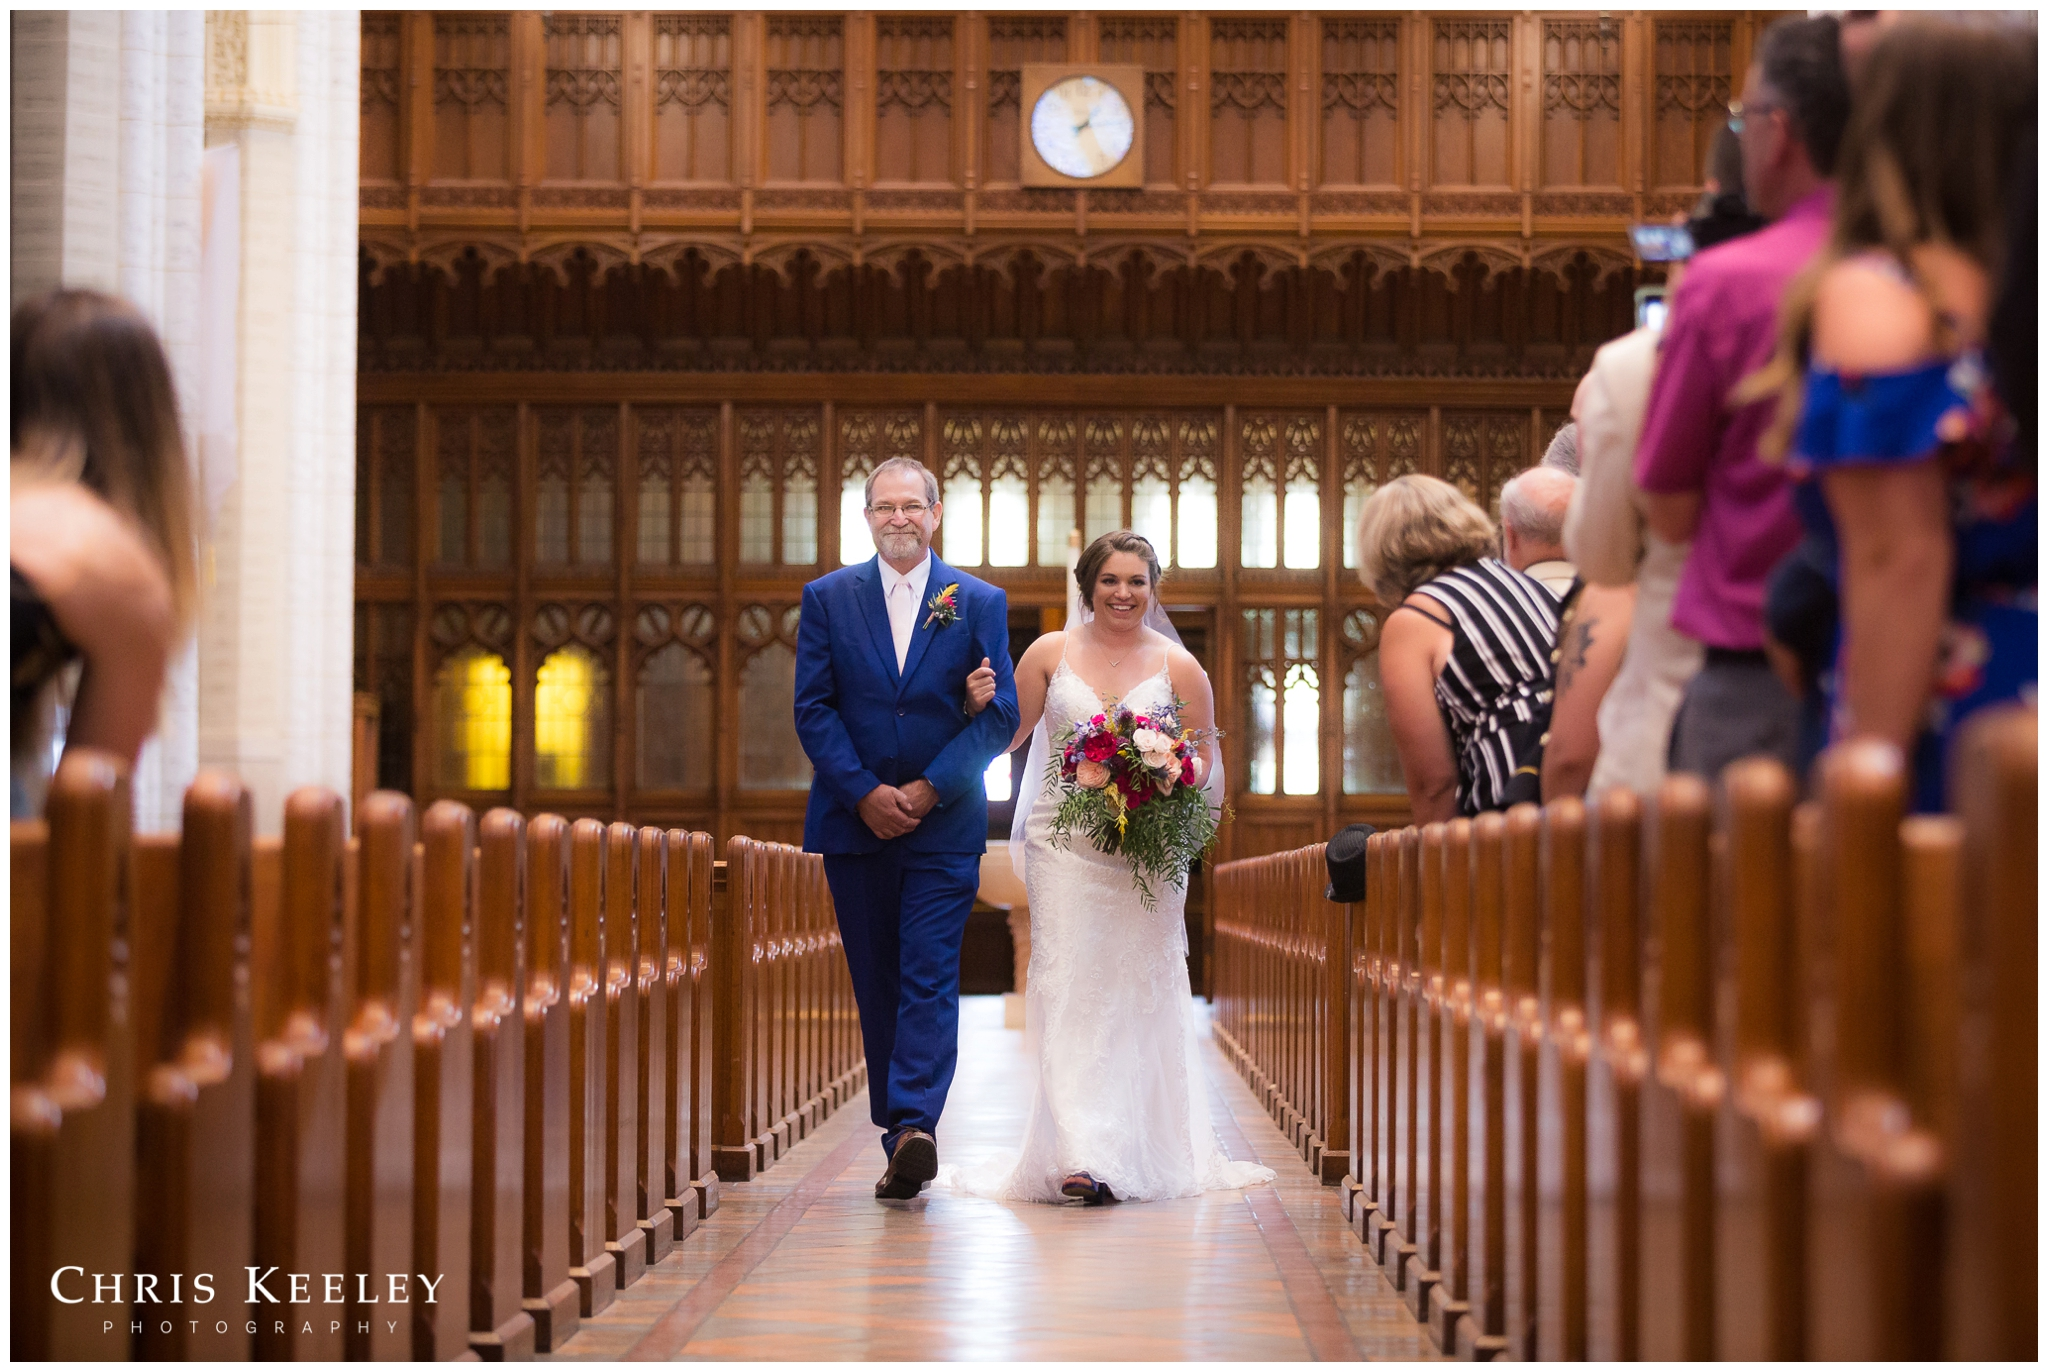 dad-and-daughter-coming-down-aisle.jpg